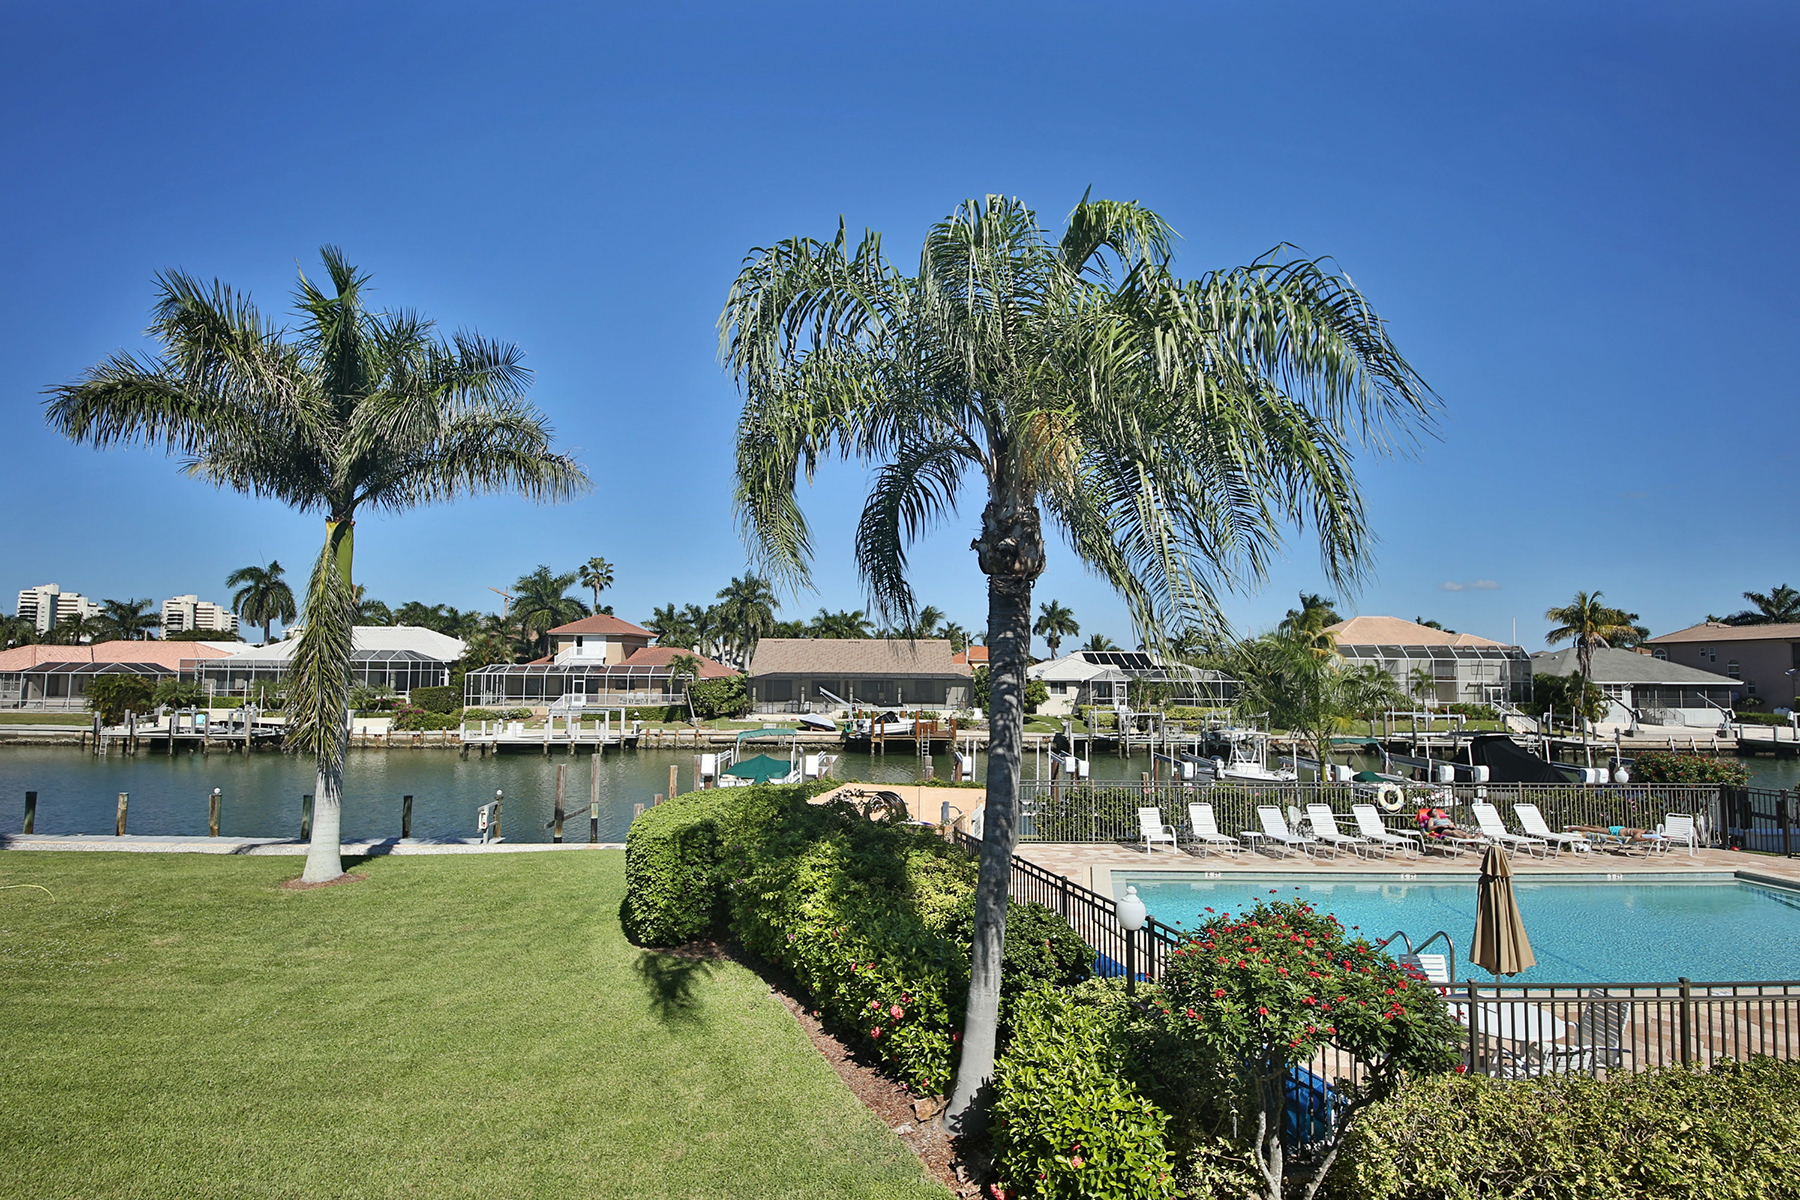 Condominium for Sale at MARCO ISLAND - VANTAGE POINT 860 Panama Ct 209 Marco Island, Florida, 34145 United States